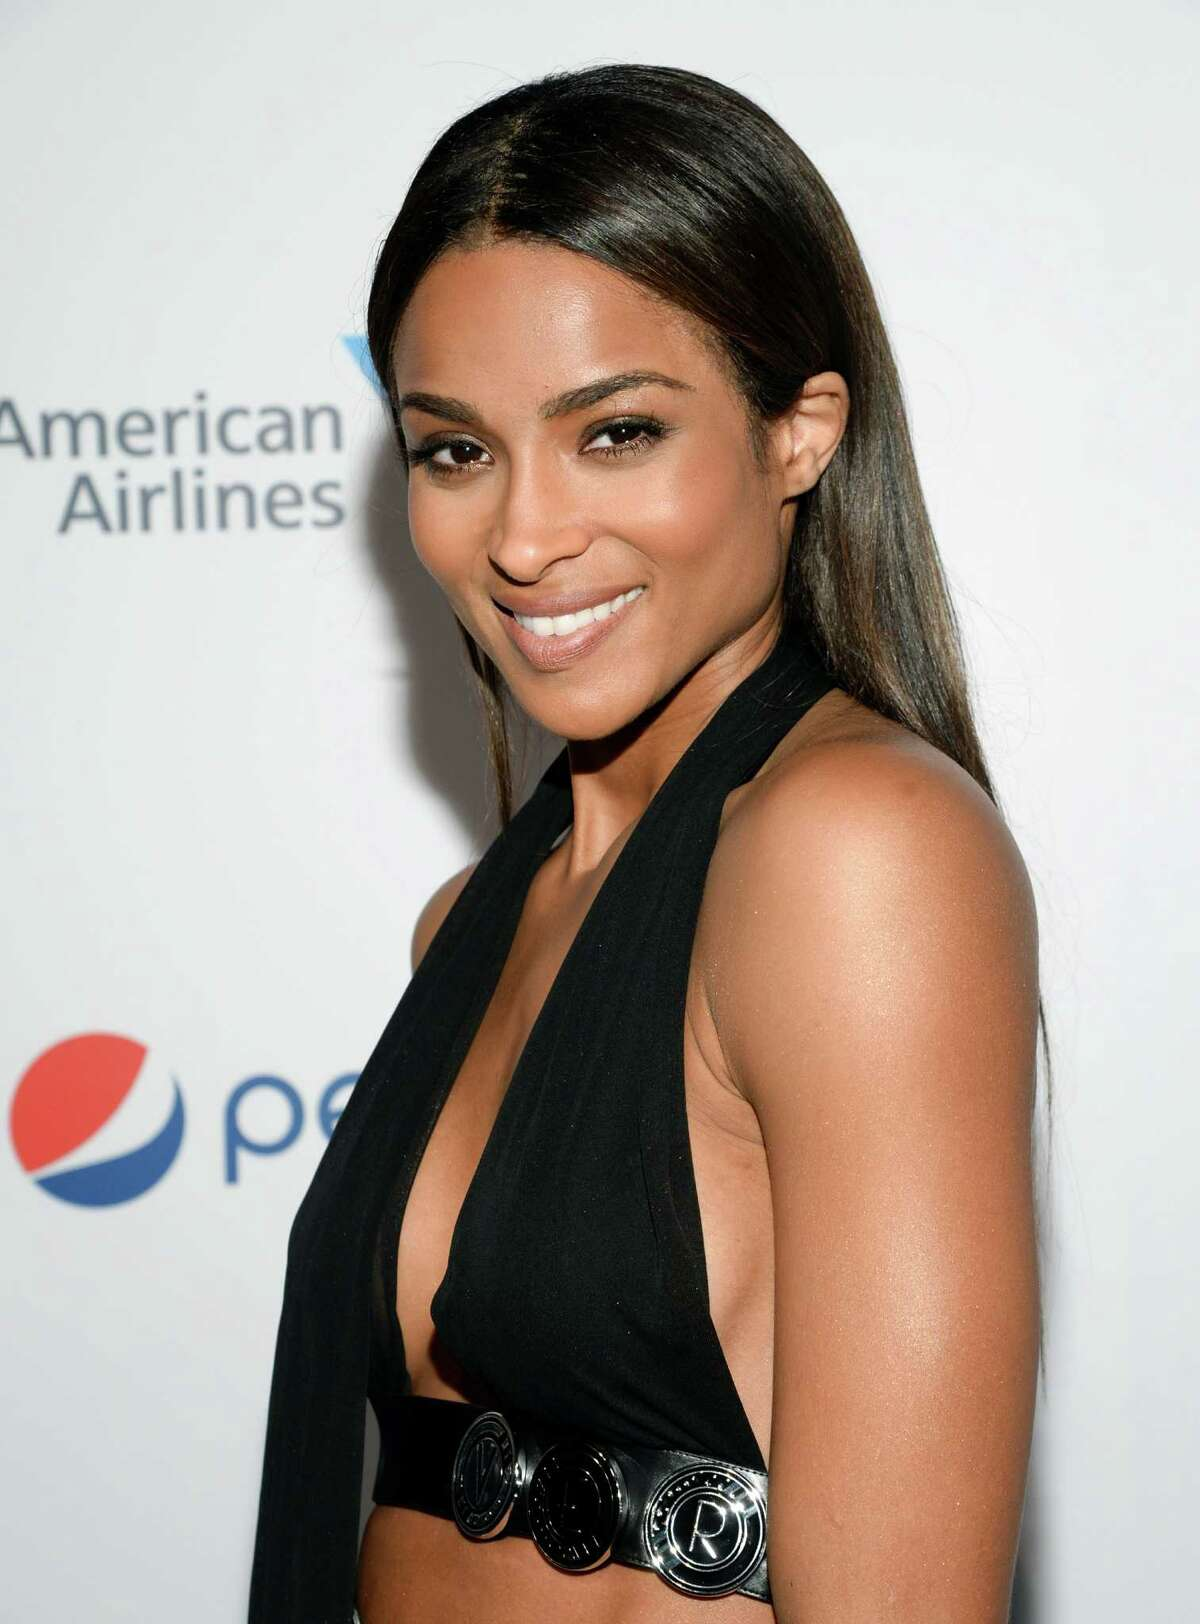 Singer Ciara attends the 2015 Billboard Women in Music honors at Cipriani 42nd Street on Friday, Dec. 11, 2015, in New York. (Photo by Evan Agostini/Invision/AP) ORG XMIT: NYEA121